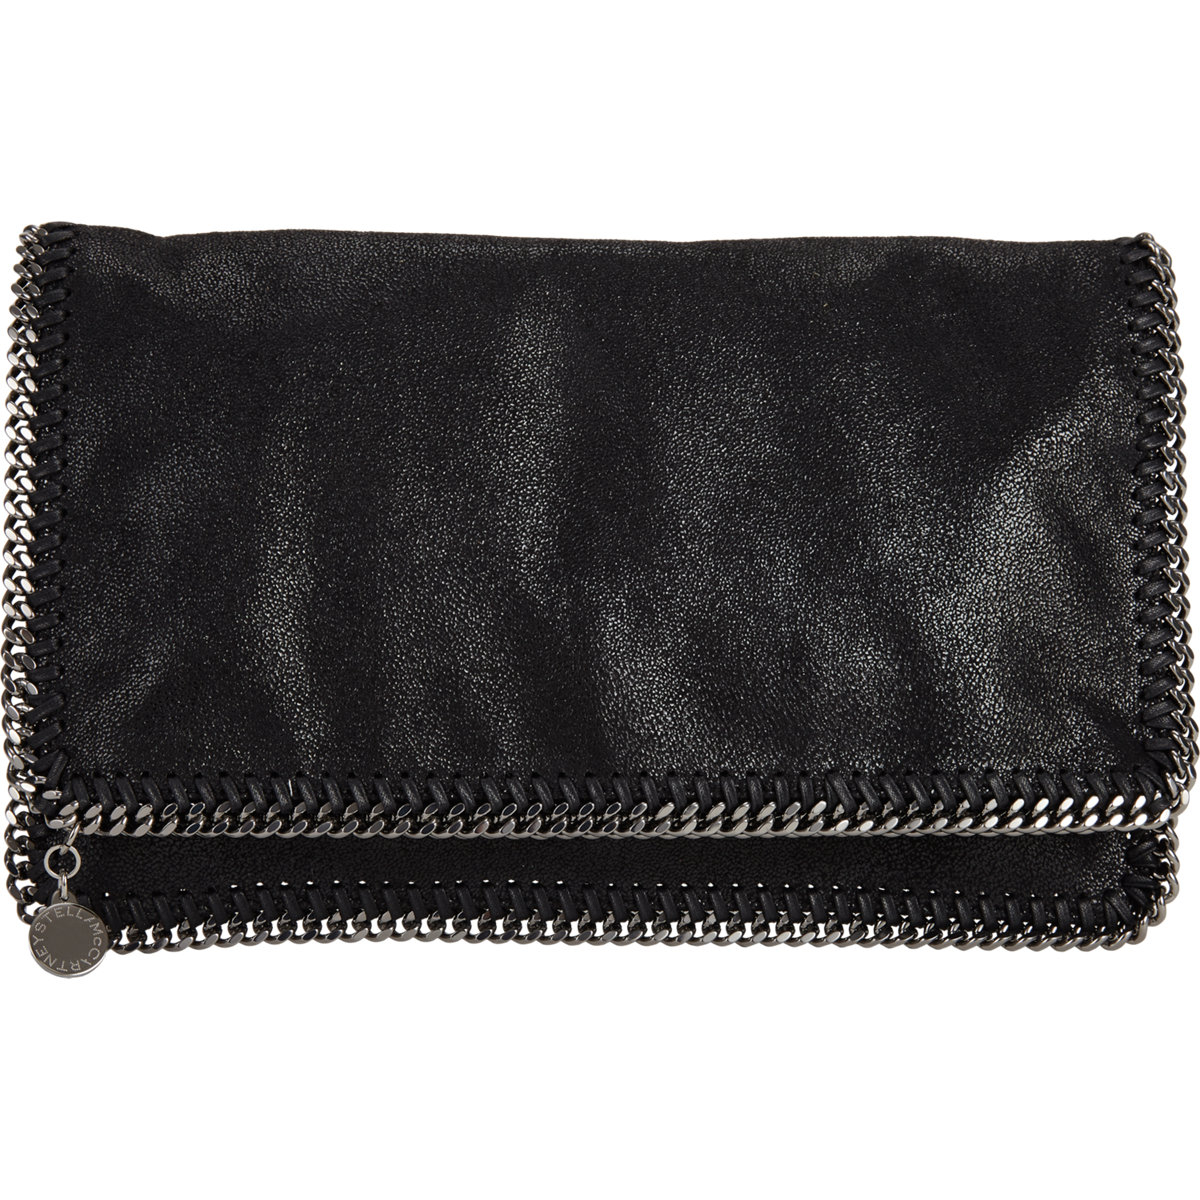 c5890ce607 Gallery. Previously sold at  Barneys New York · Women s Stella Mccartney  Falabella Women s Box Bags ...